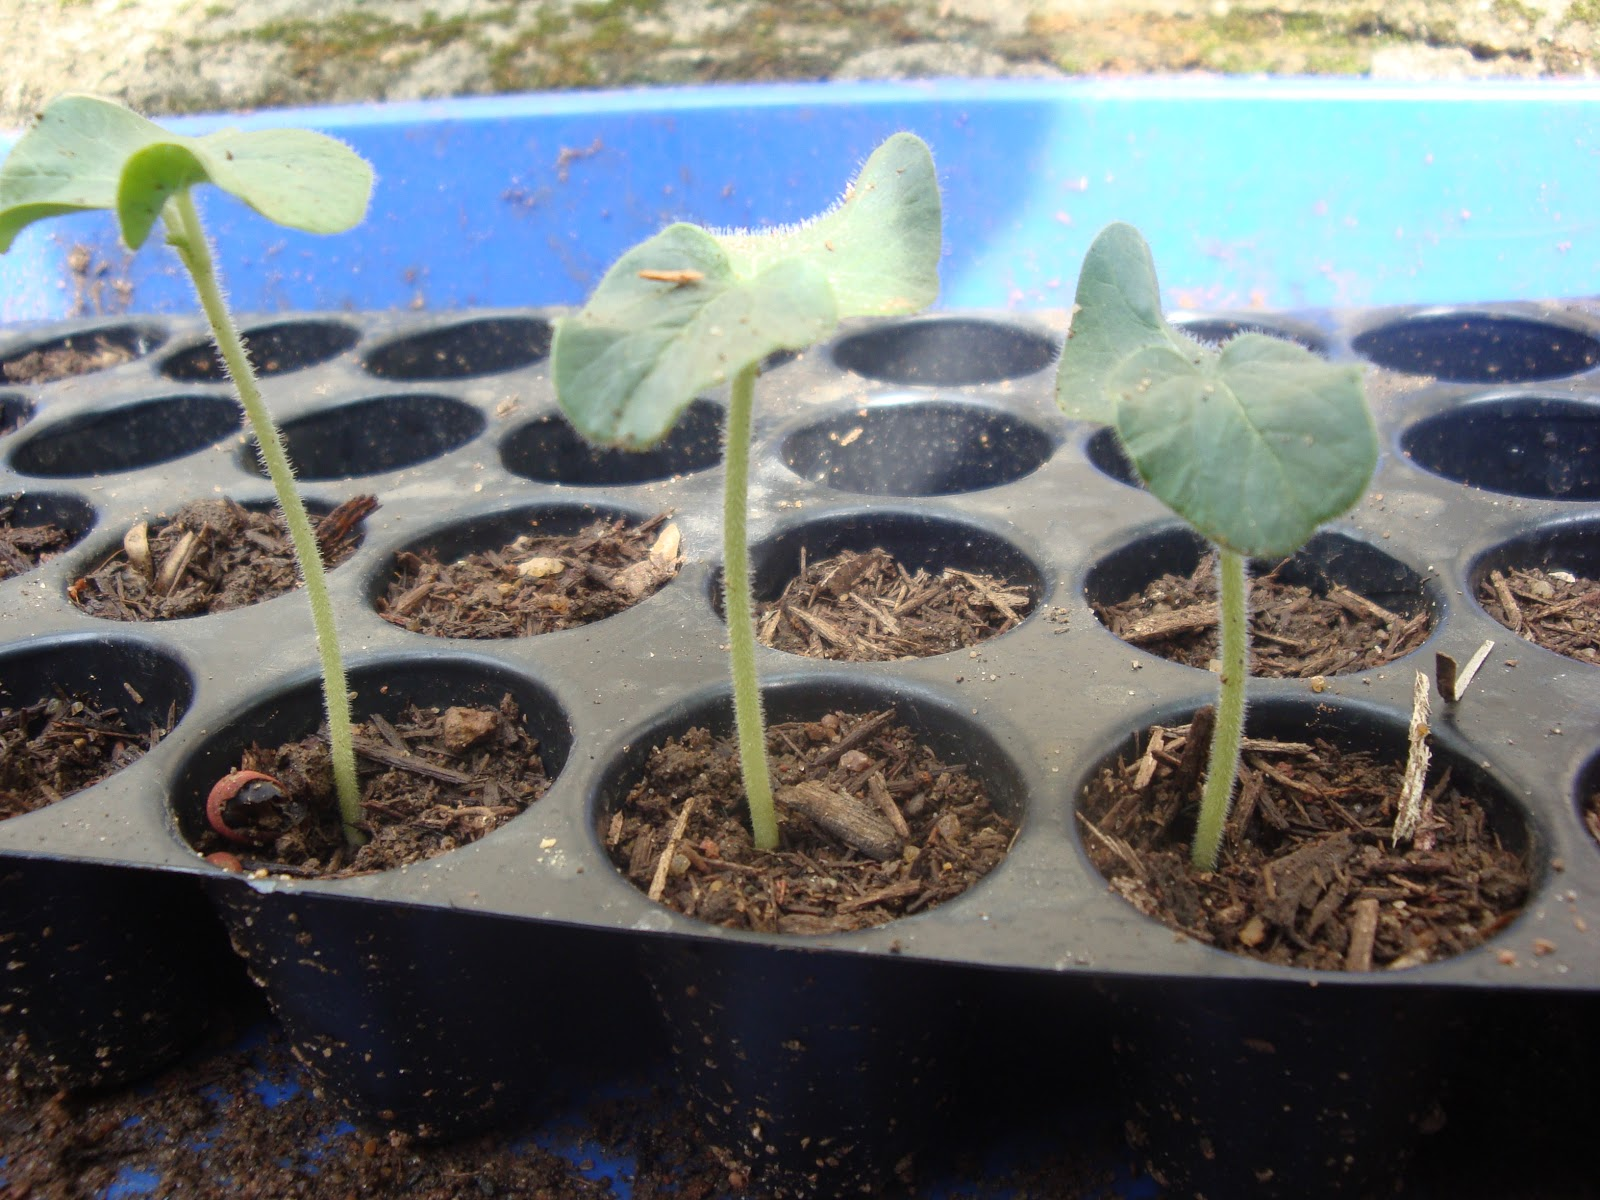 Okra Life Cycle http://sevenandhalfsaturn.blogspot.com/2011/08/ladys-fingerokra-seed-germination.html